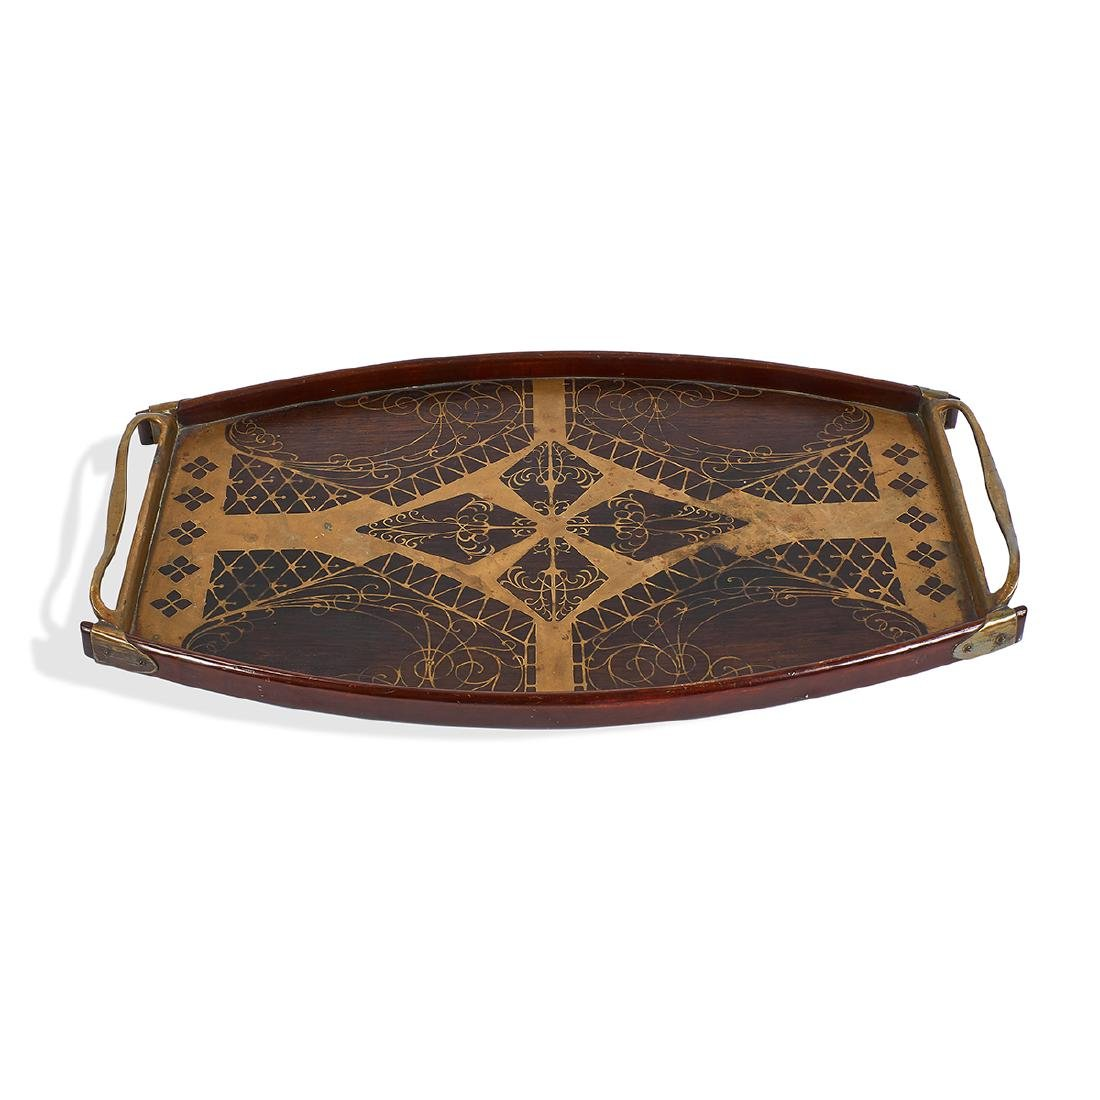 Erhard & Söhne, Two-Handled Inlaid Serving Tray